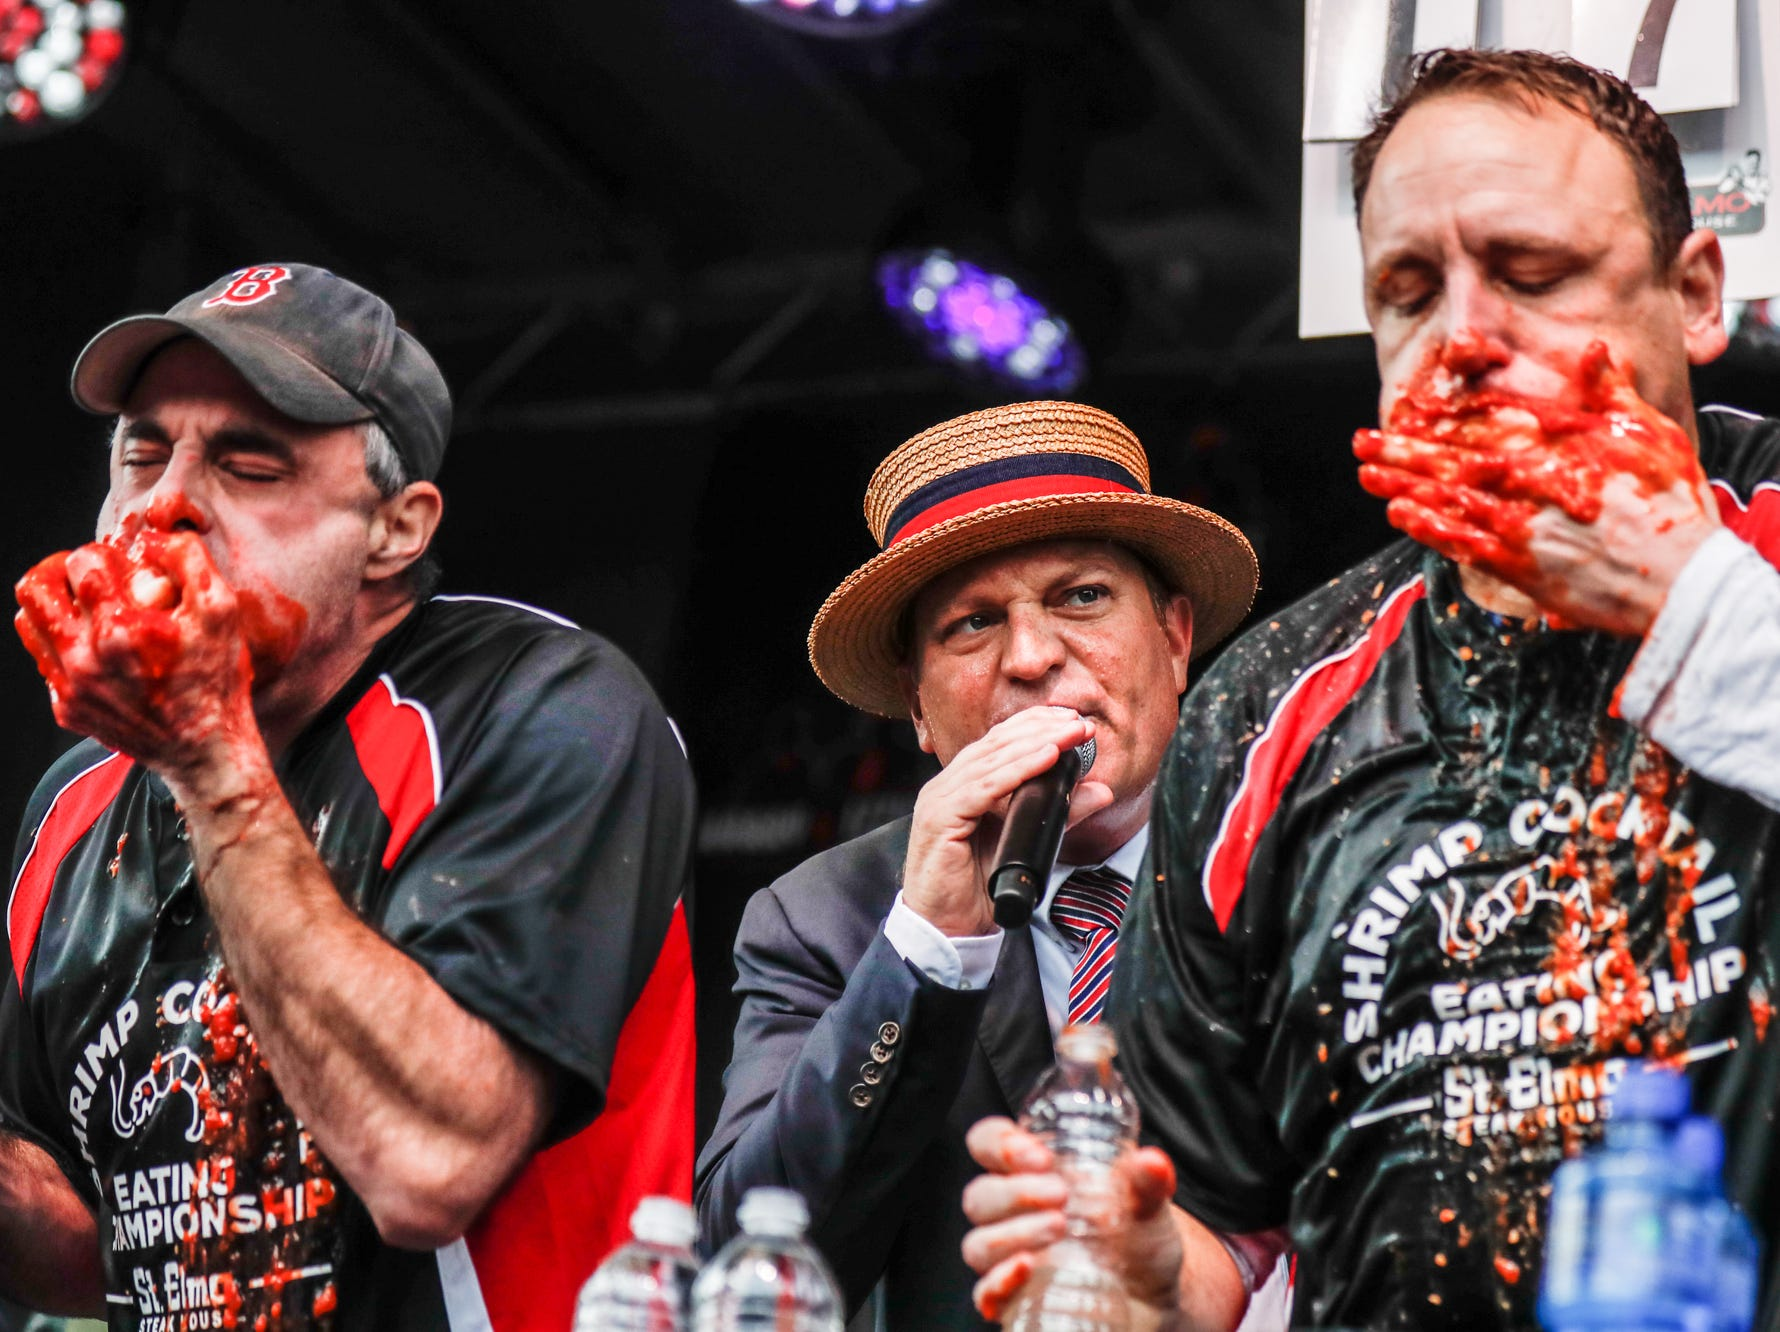 Major League Eaters Geoff Esper (left) and Joey Chestnut are urged on by Major League Eating emcee Sam Barclay during the sixth annual World Famous St. Elmo Shrimp Cocktail Eating Championship, held during the Meijer Tailgate Party on Georgia St. in Indianapolis, on Saturday, Dec. 1, 2018. Chestnut narrowly defeated Esper, setting a new world record, eating 18 pounds and 9.6 ounces of St. Elmo Shrimp Cocktail in 8 minutes.